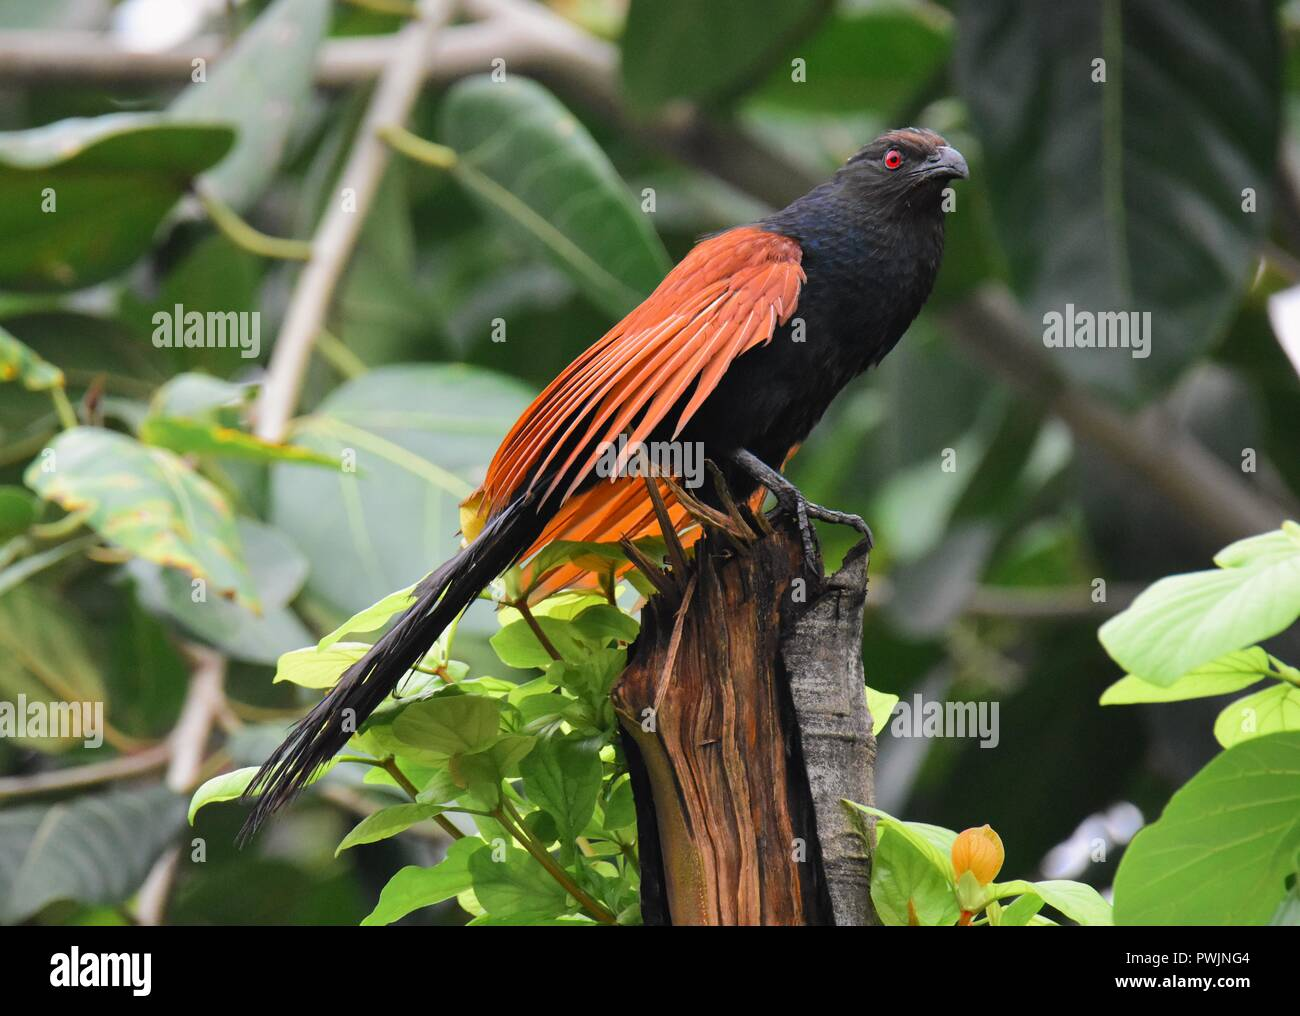 Greater Coucal on tree branch - Stock Image